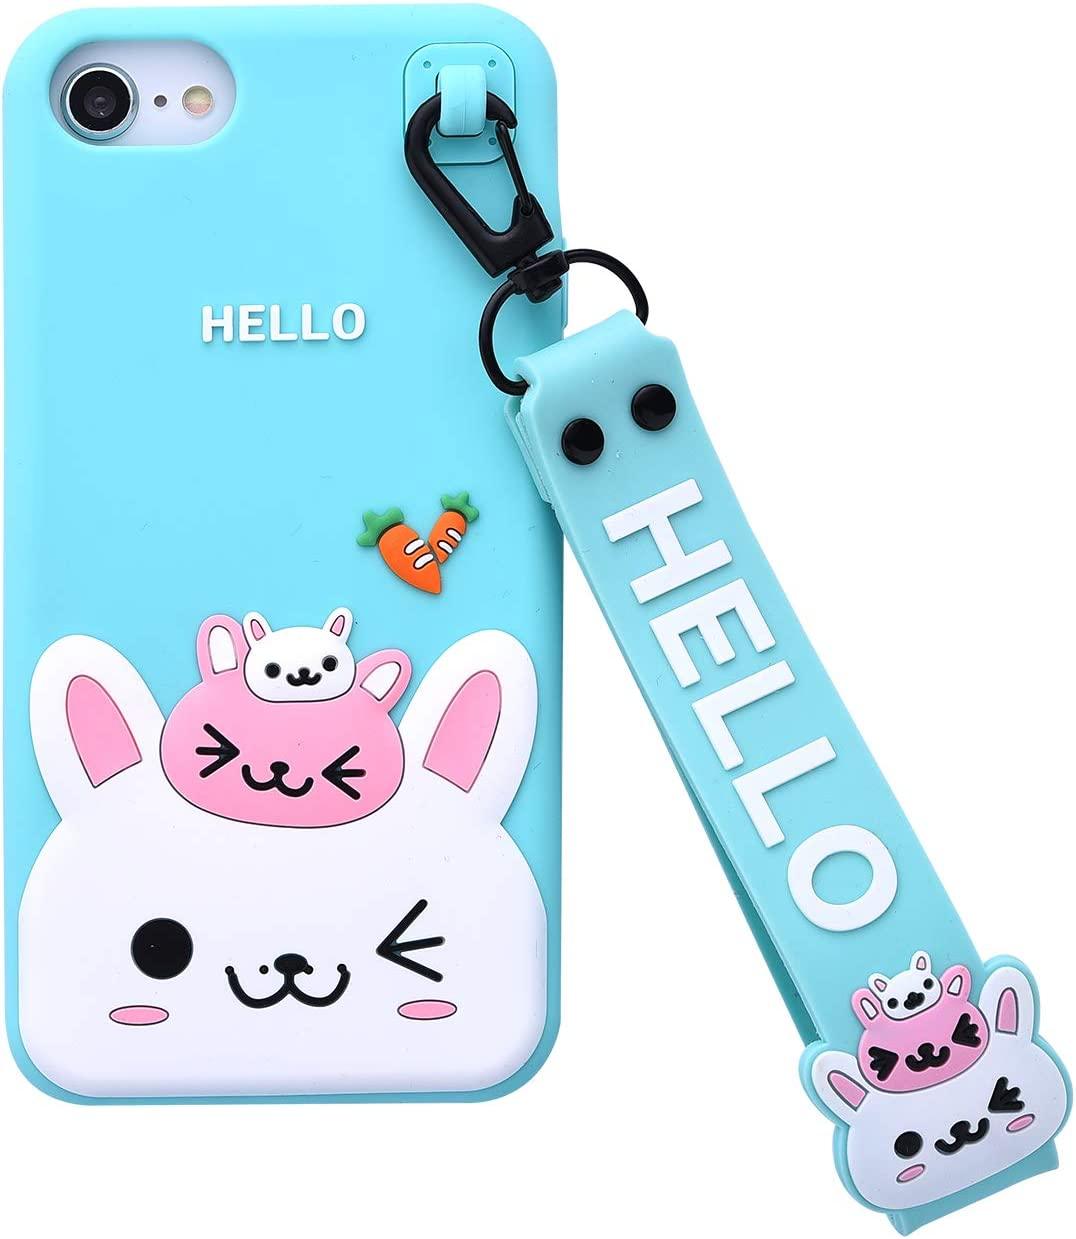 Bunny Case for iPhone SE 2020 Case,iFunny Cute 3D Cartoon Kawaii Radish Rabbit Shockproof Soft Silicone Rubber Case with Wrist Strap for iPhone SE 2020/6 6S 7 8(4.7inch) (Radish Rabbit Green)